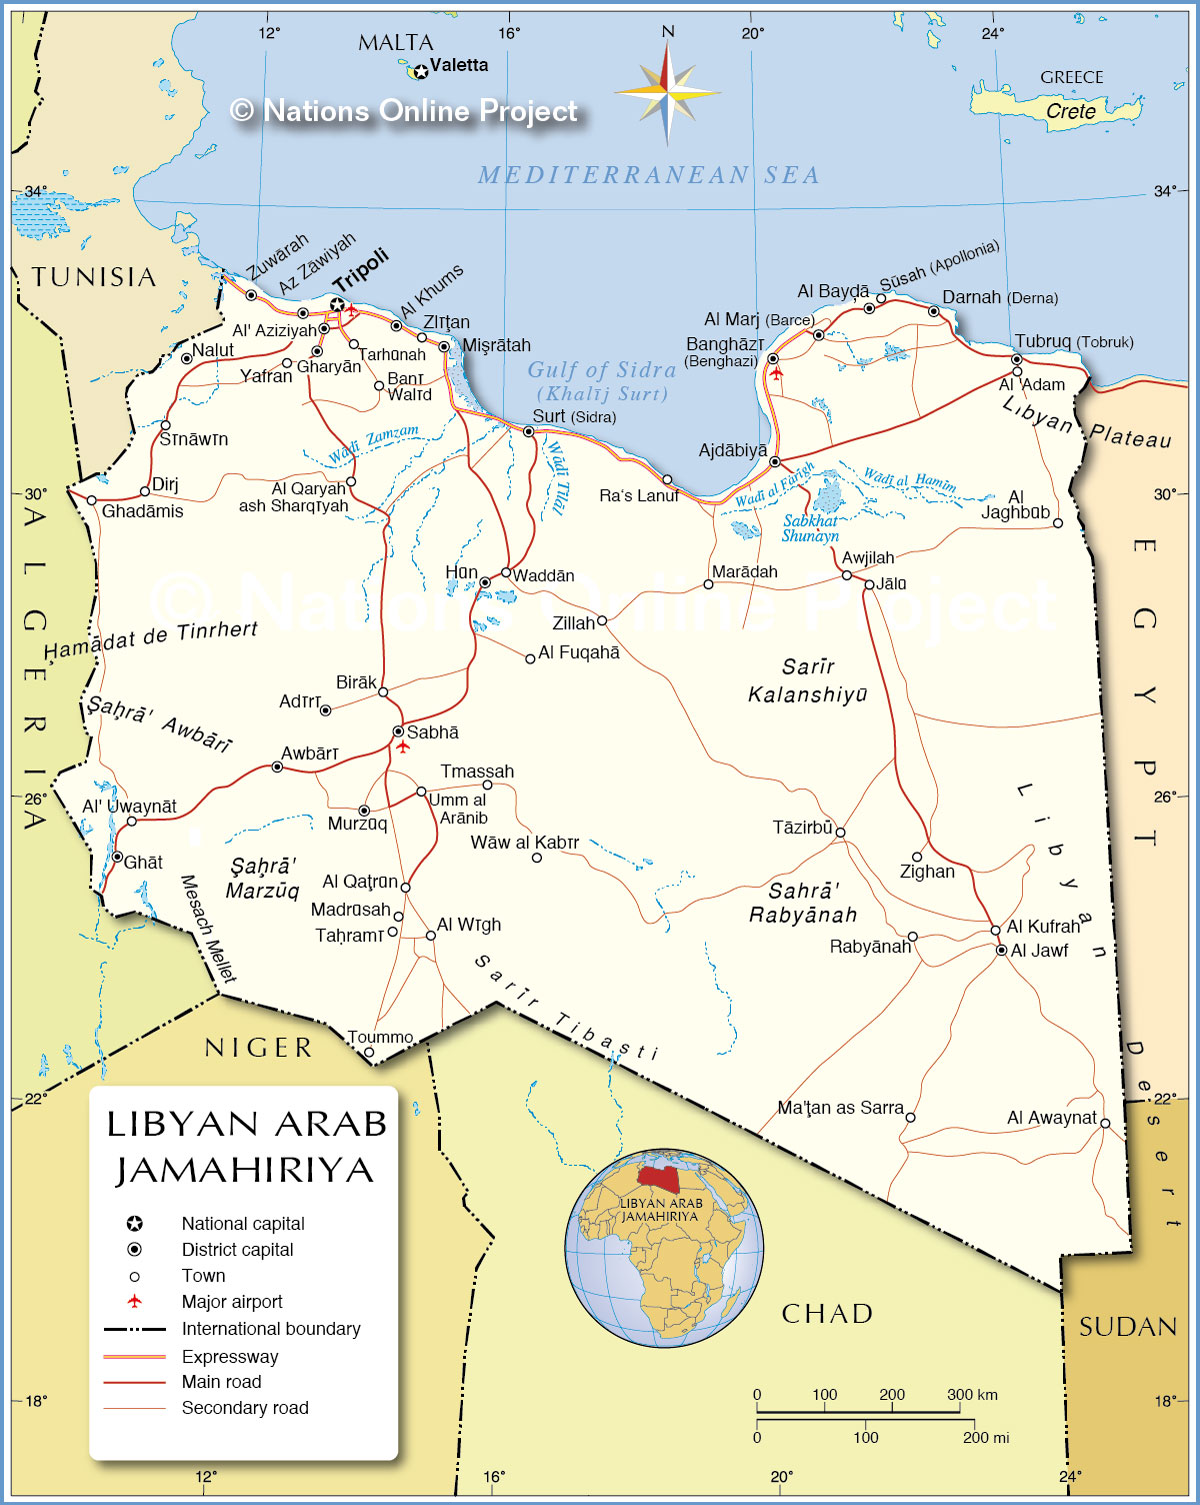 Political Map Of Libya Pixel Nations Online Project - Tunisia country political map